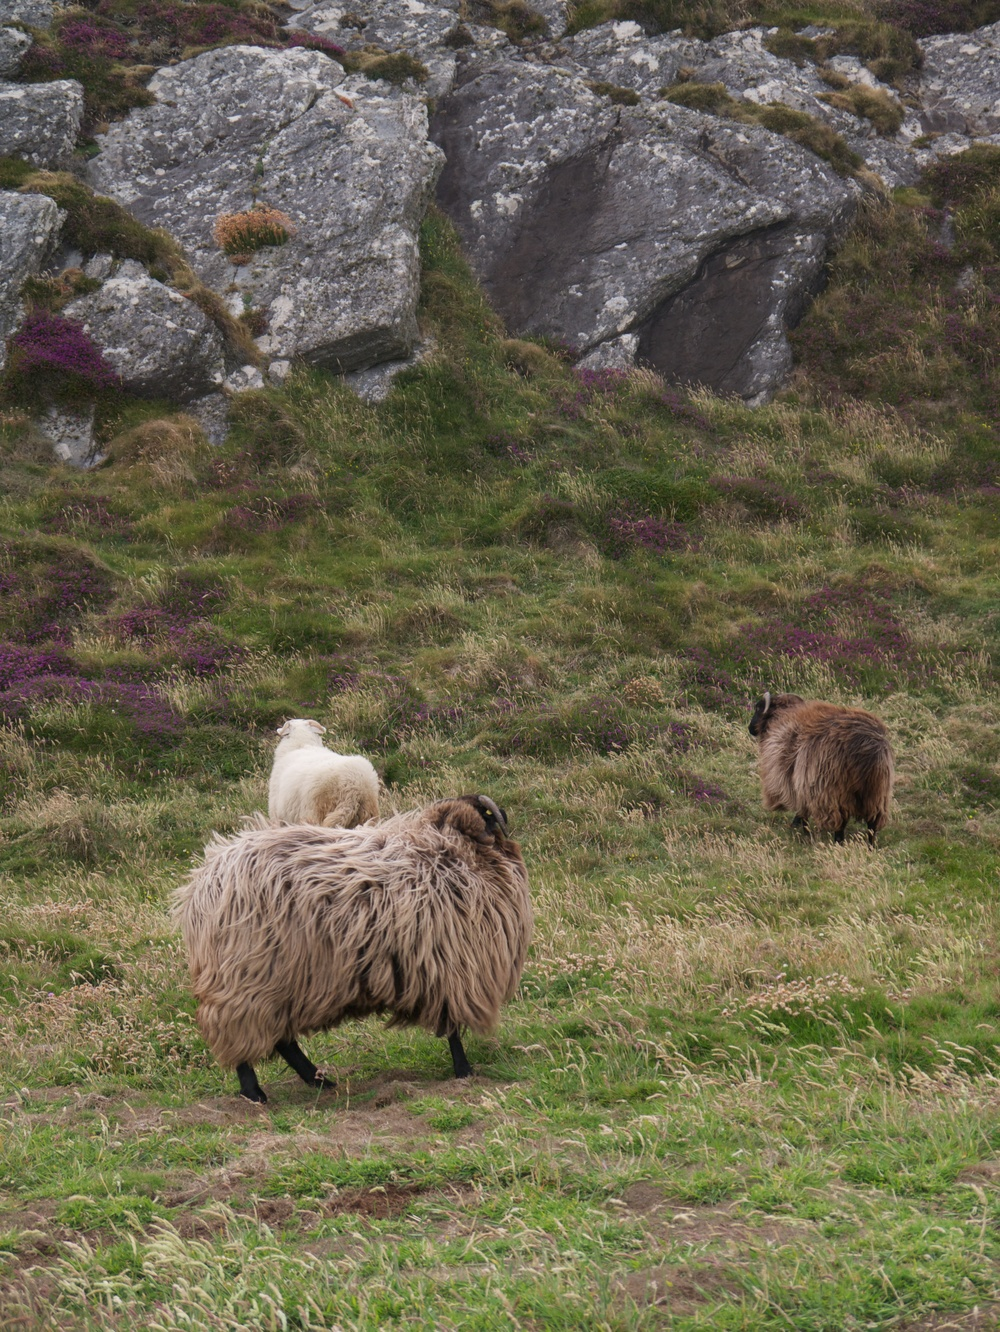 These were very odd sheep. So. Much. Wool.